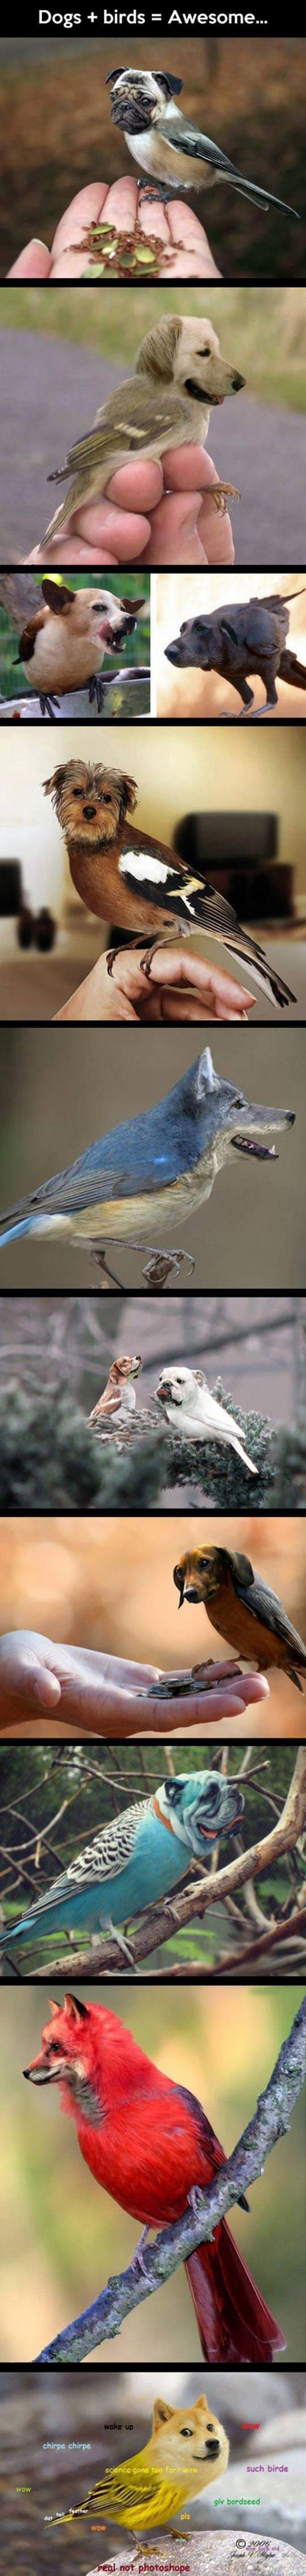 dogs plus birds funny picture